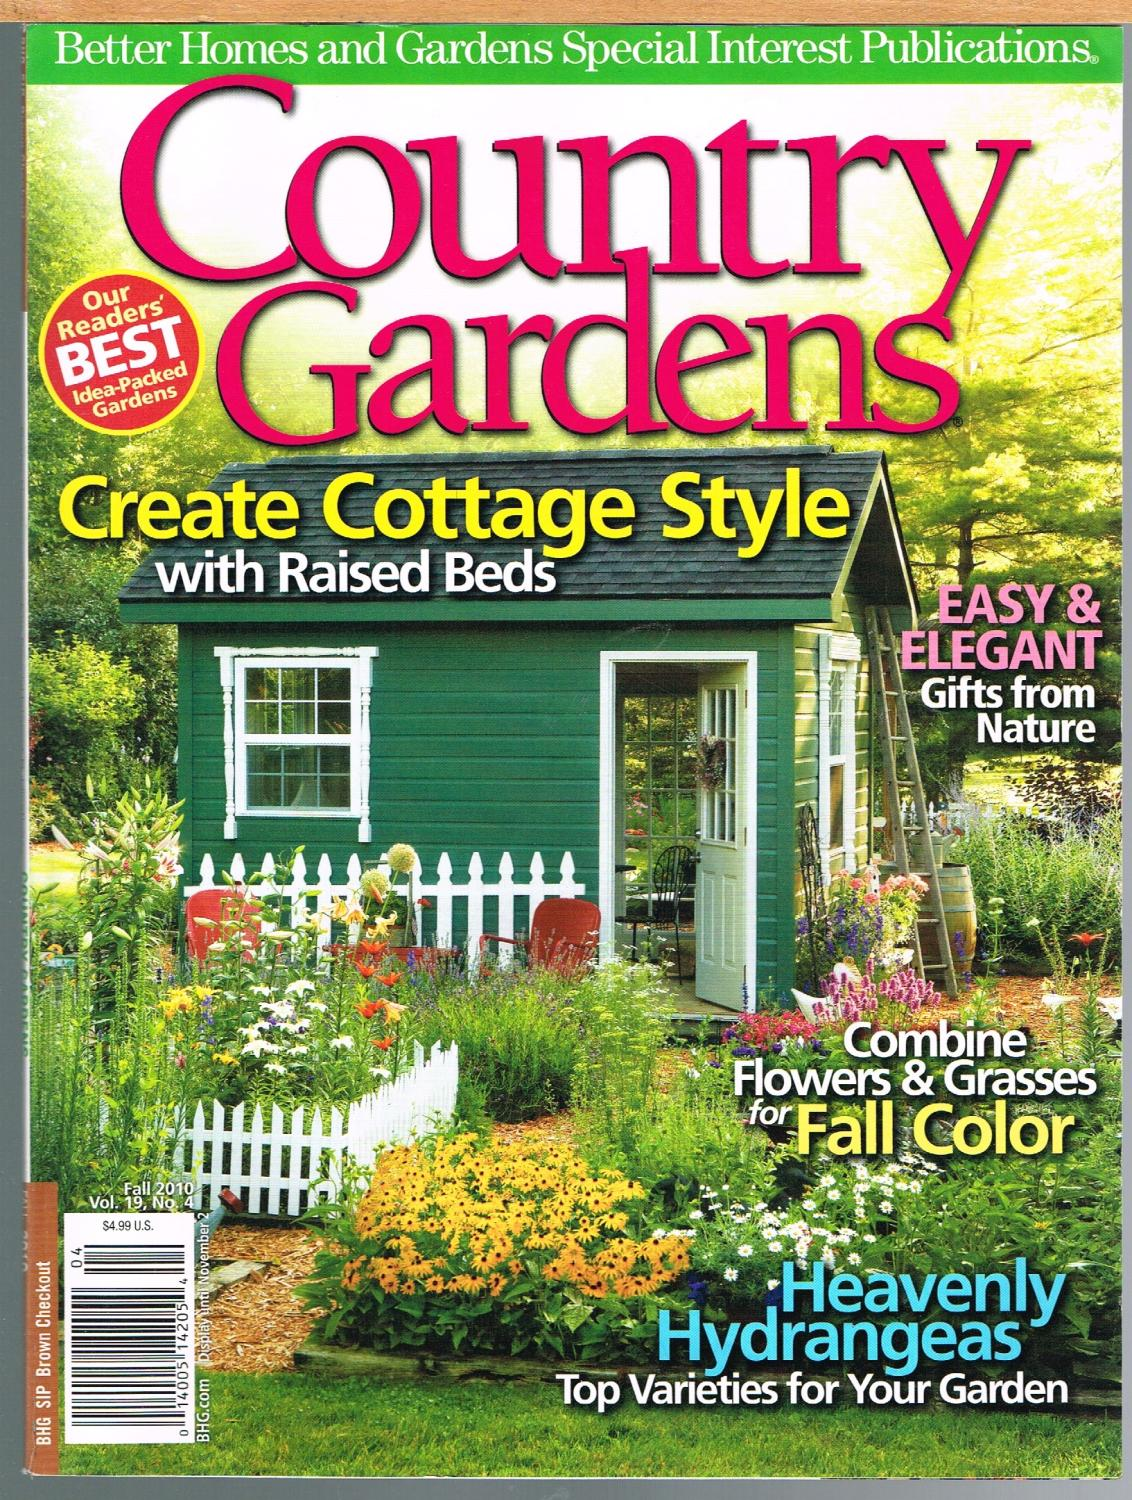 Country Gardens Fall 2010 Vol 19 No 4 Better Homes And